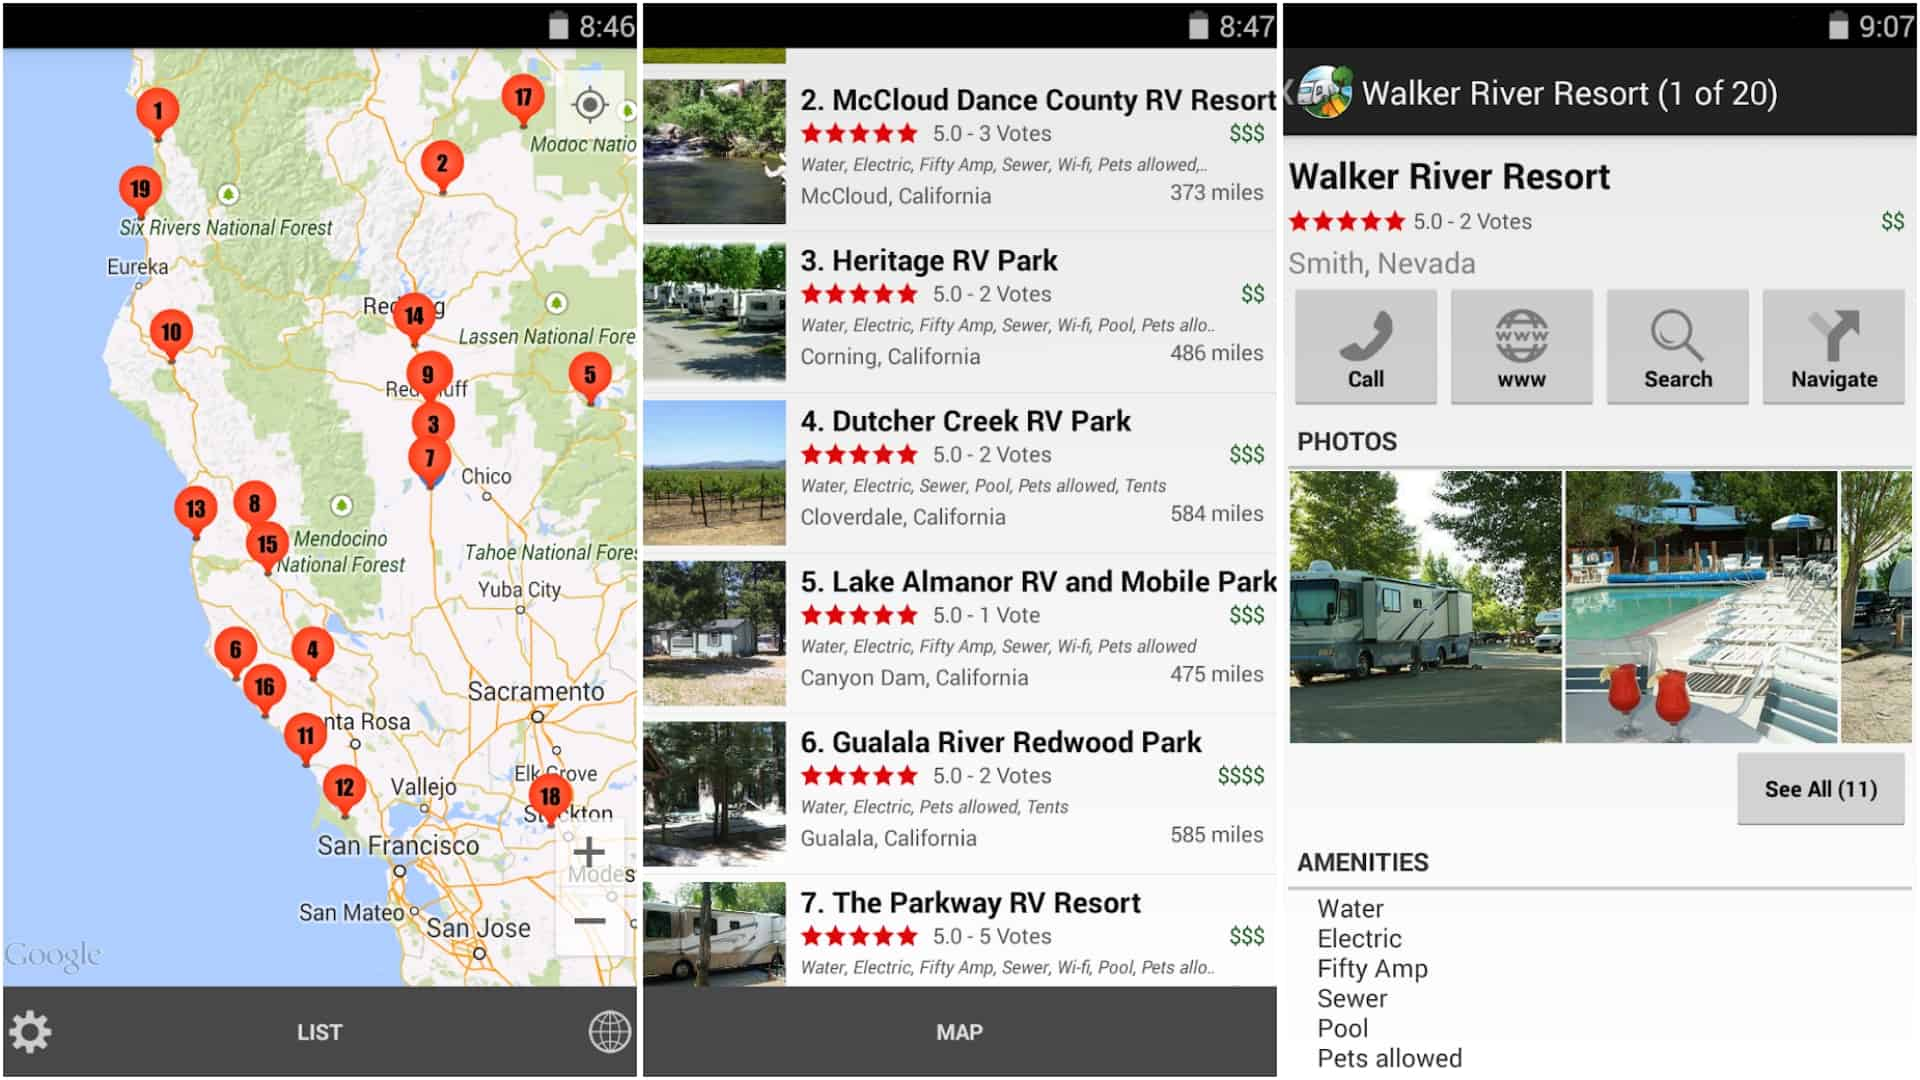 RV Parks and Campgrounds app image June 2020